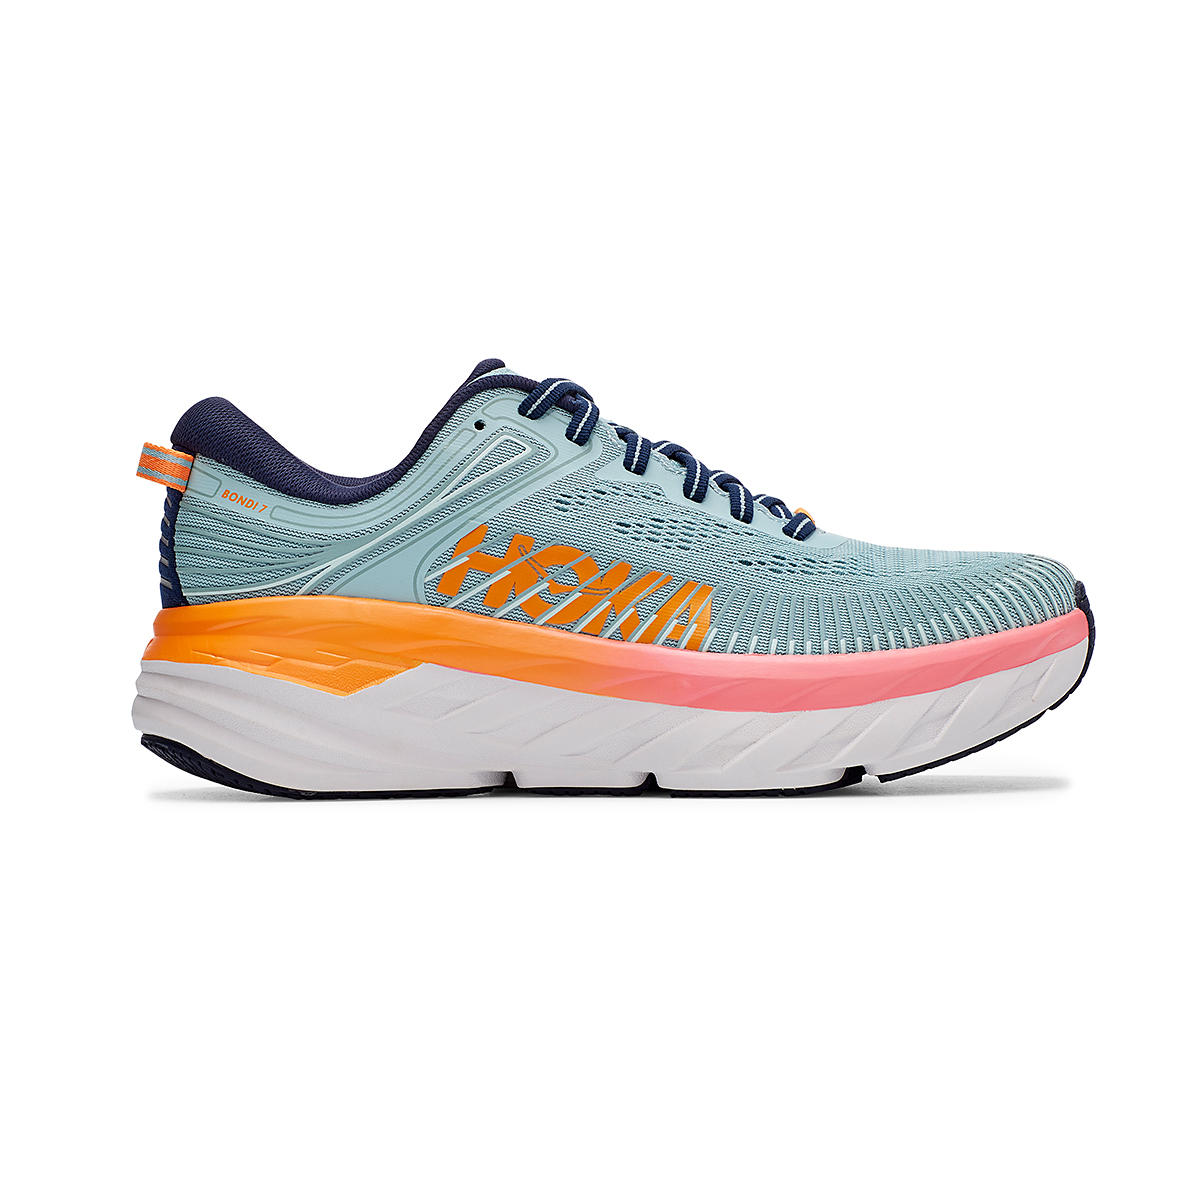 Women's Hoka One One Bondi 7 Running Shoe, , large, image 1